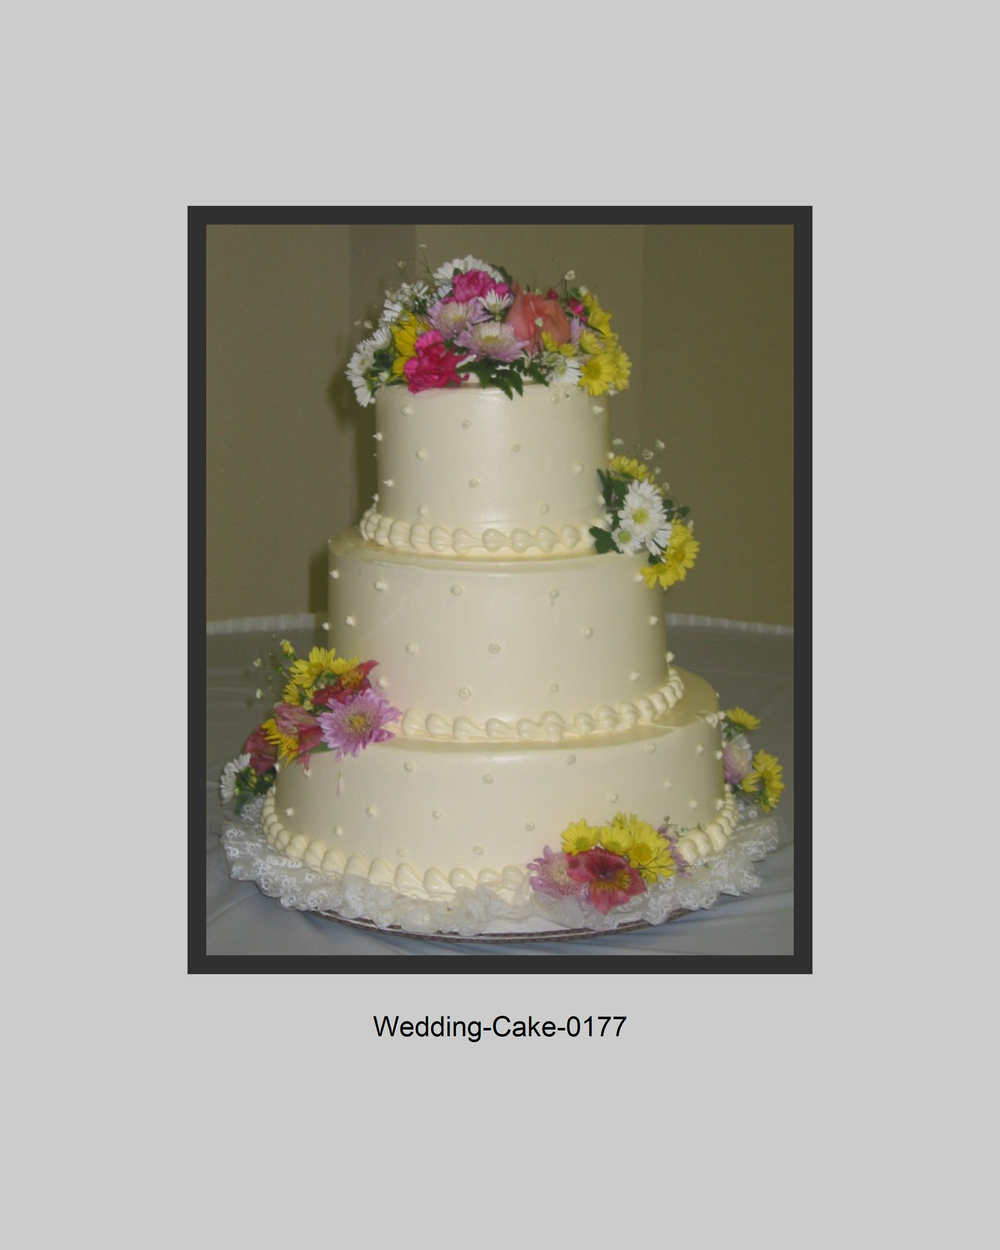 Wedding-Cake-Prints-0177.jpg